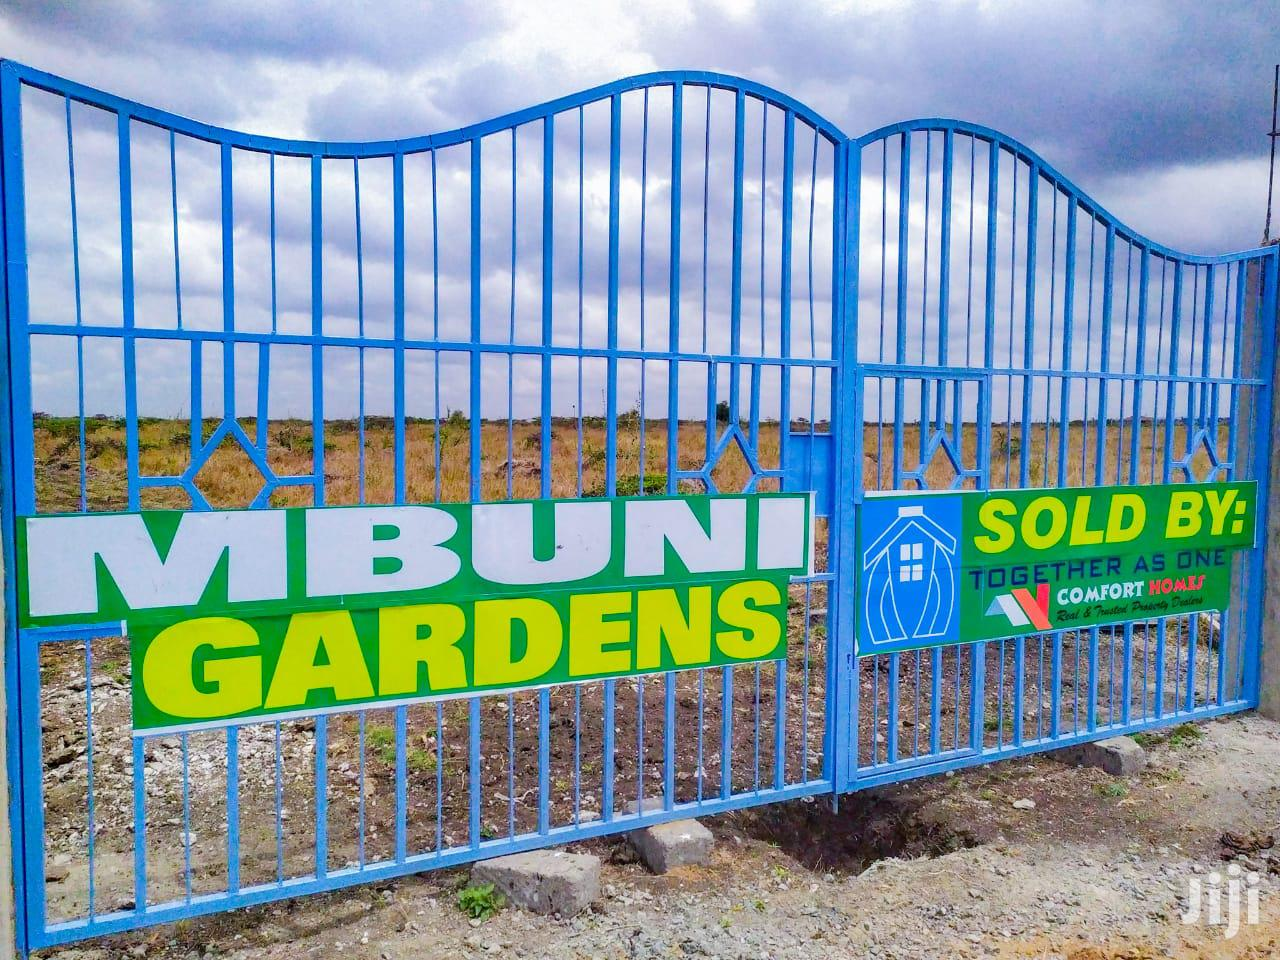 Kitengela Mbuni Gardens For Sale | Land & Plots For Sale for sale in Kitengela, Kajiado, Kenya